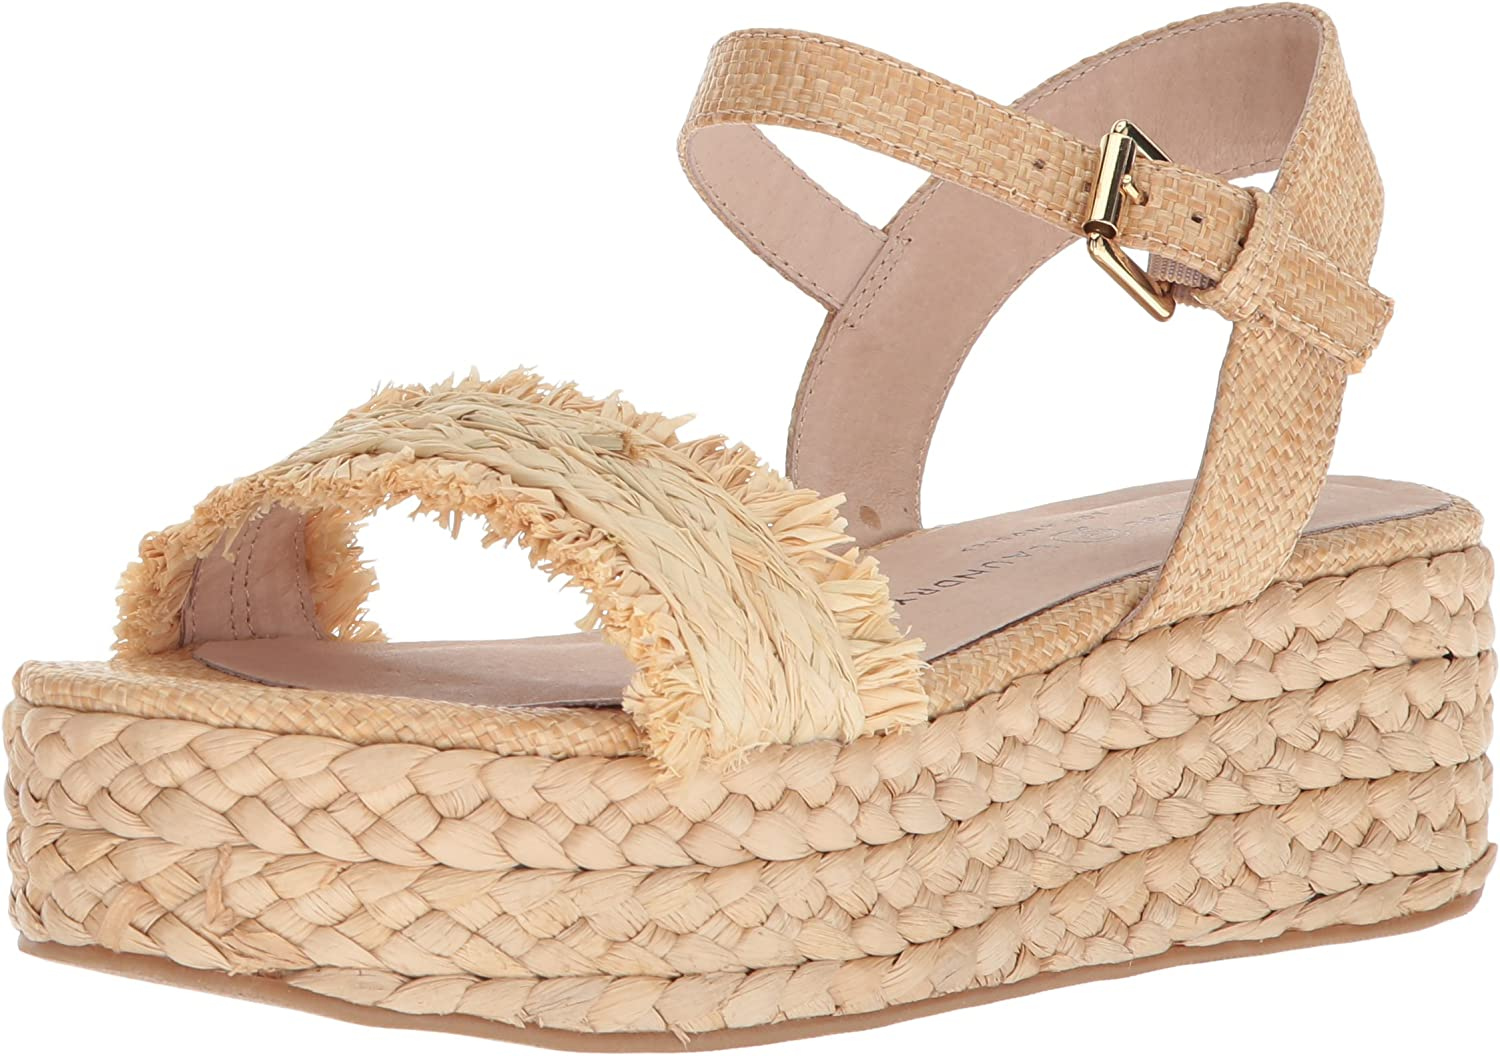 Chinese Laundry Women's Ziba Espadrille Wedge Sandal